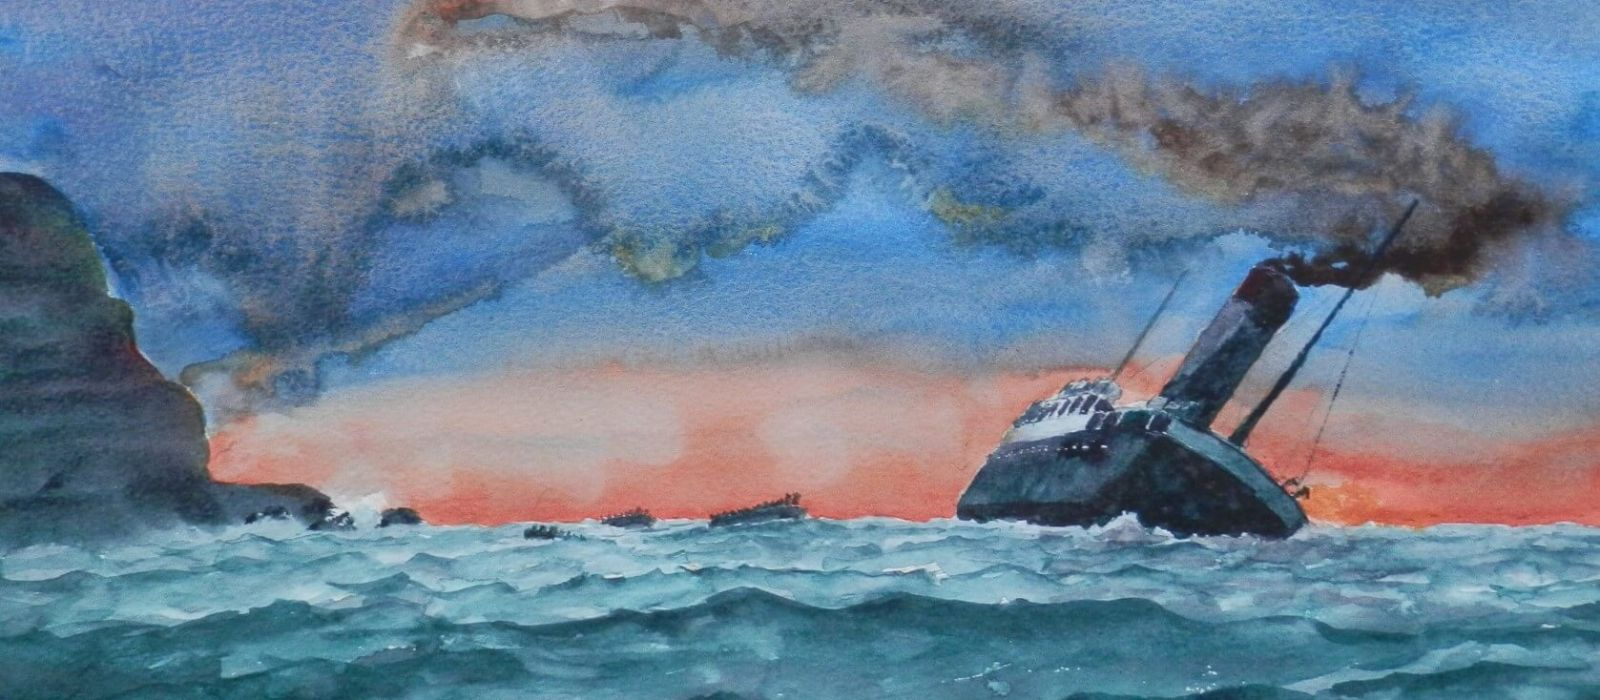 wc Wreck of the Manuka